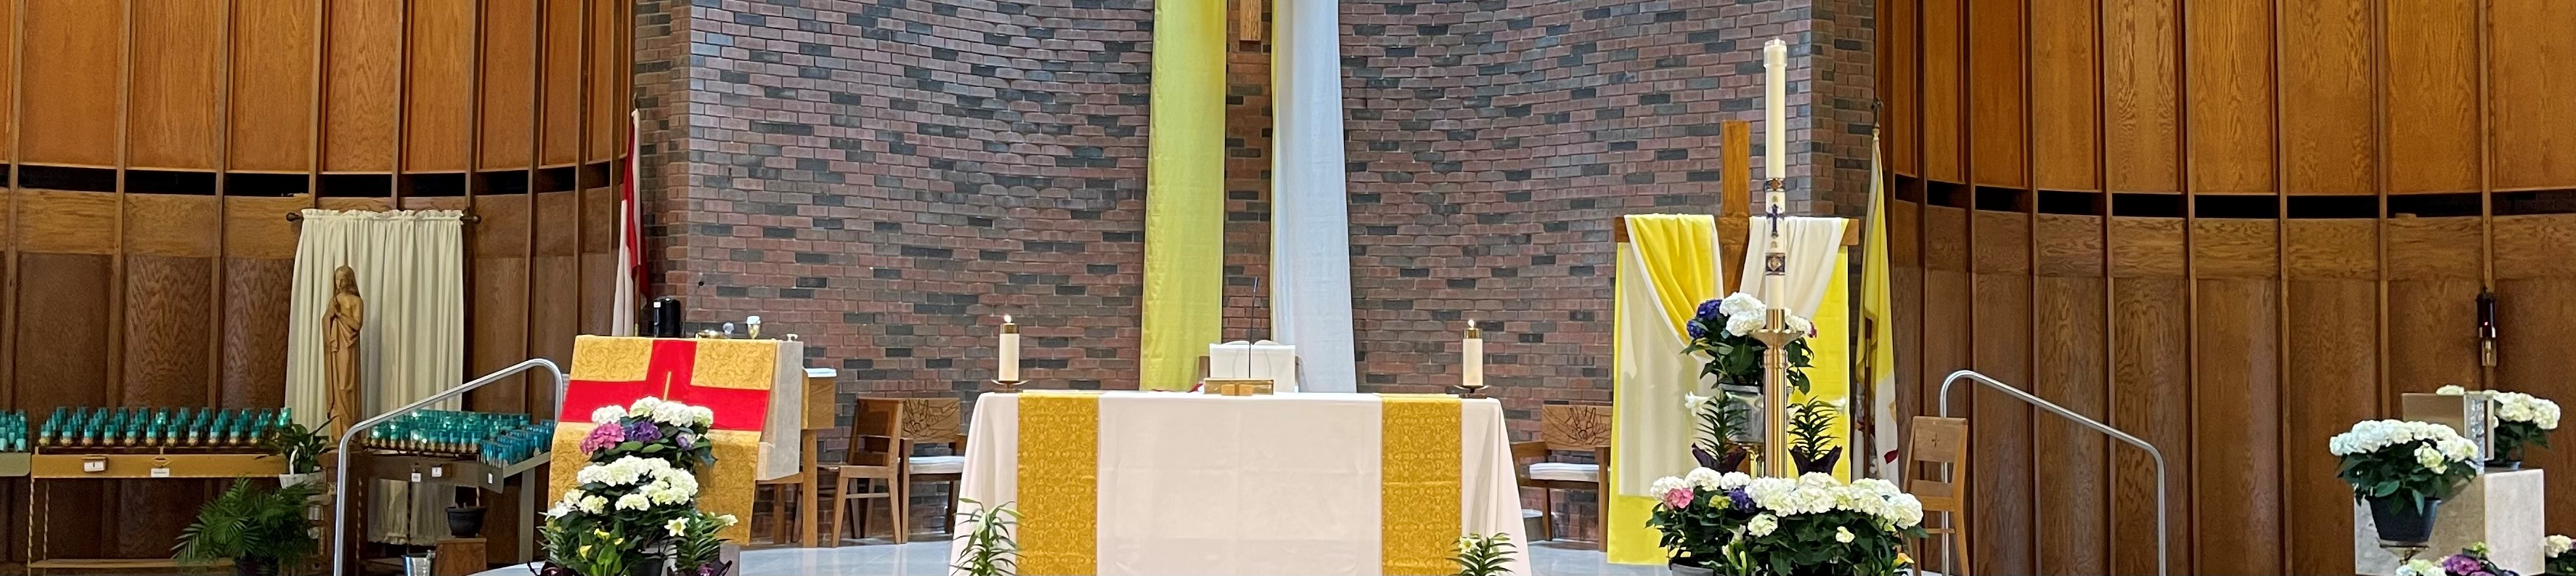 Altar of St Mary's with Gold decor and Easter flowers